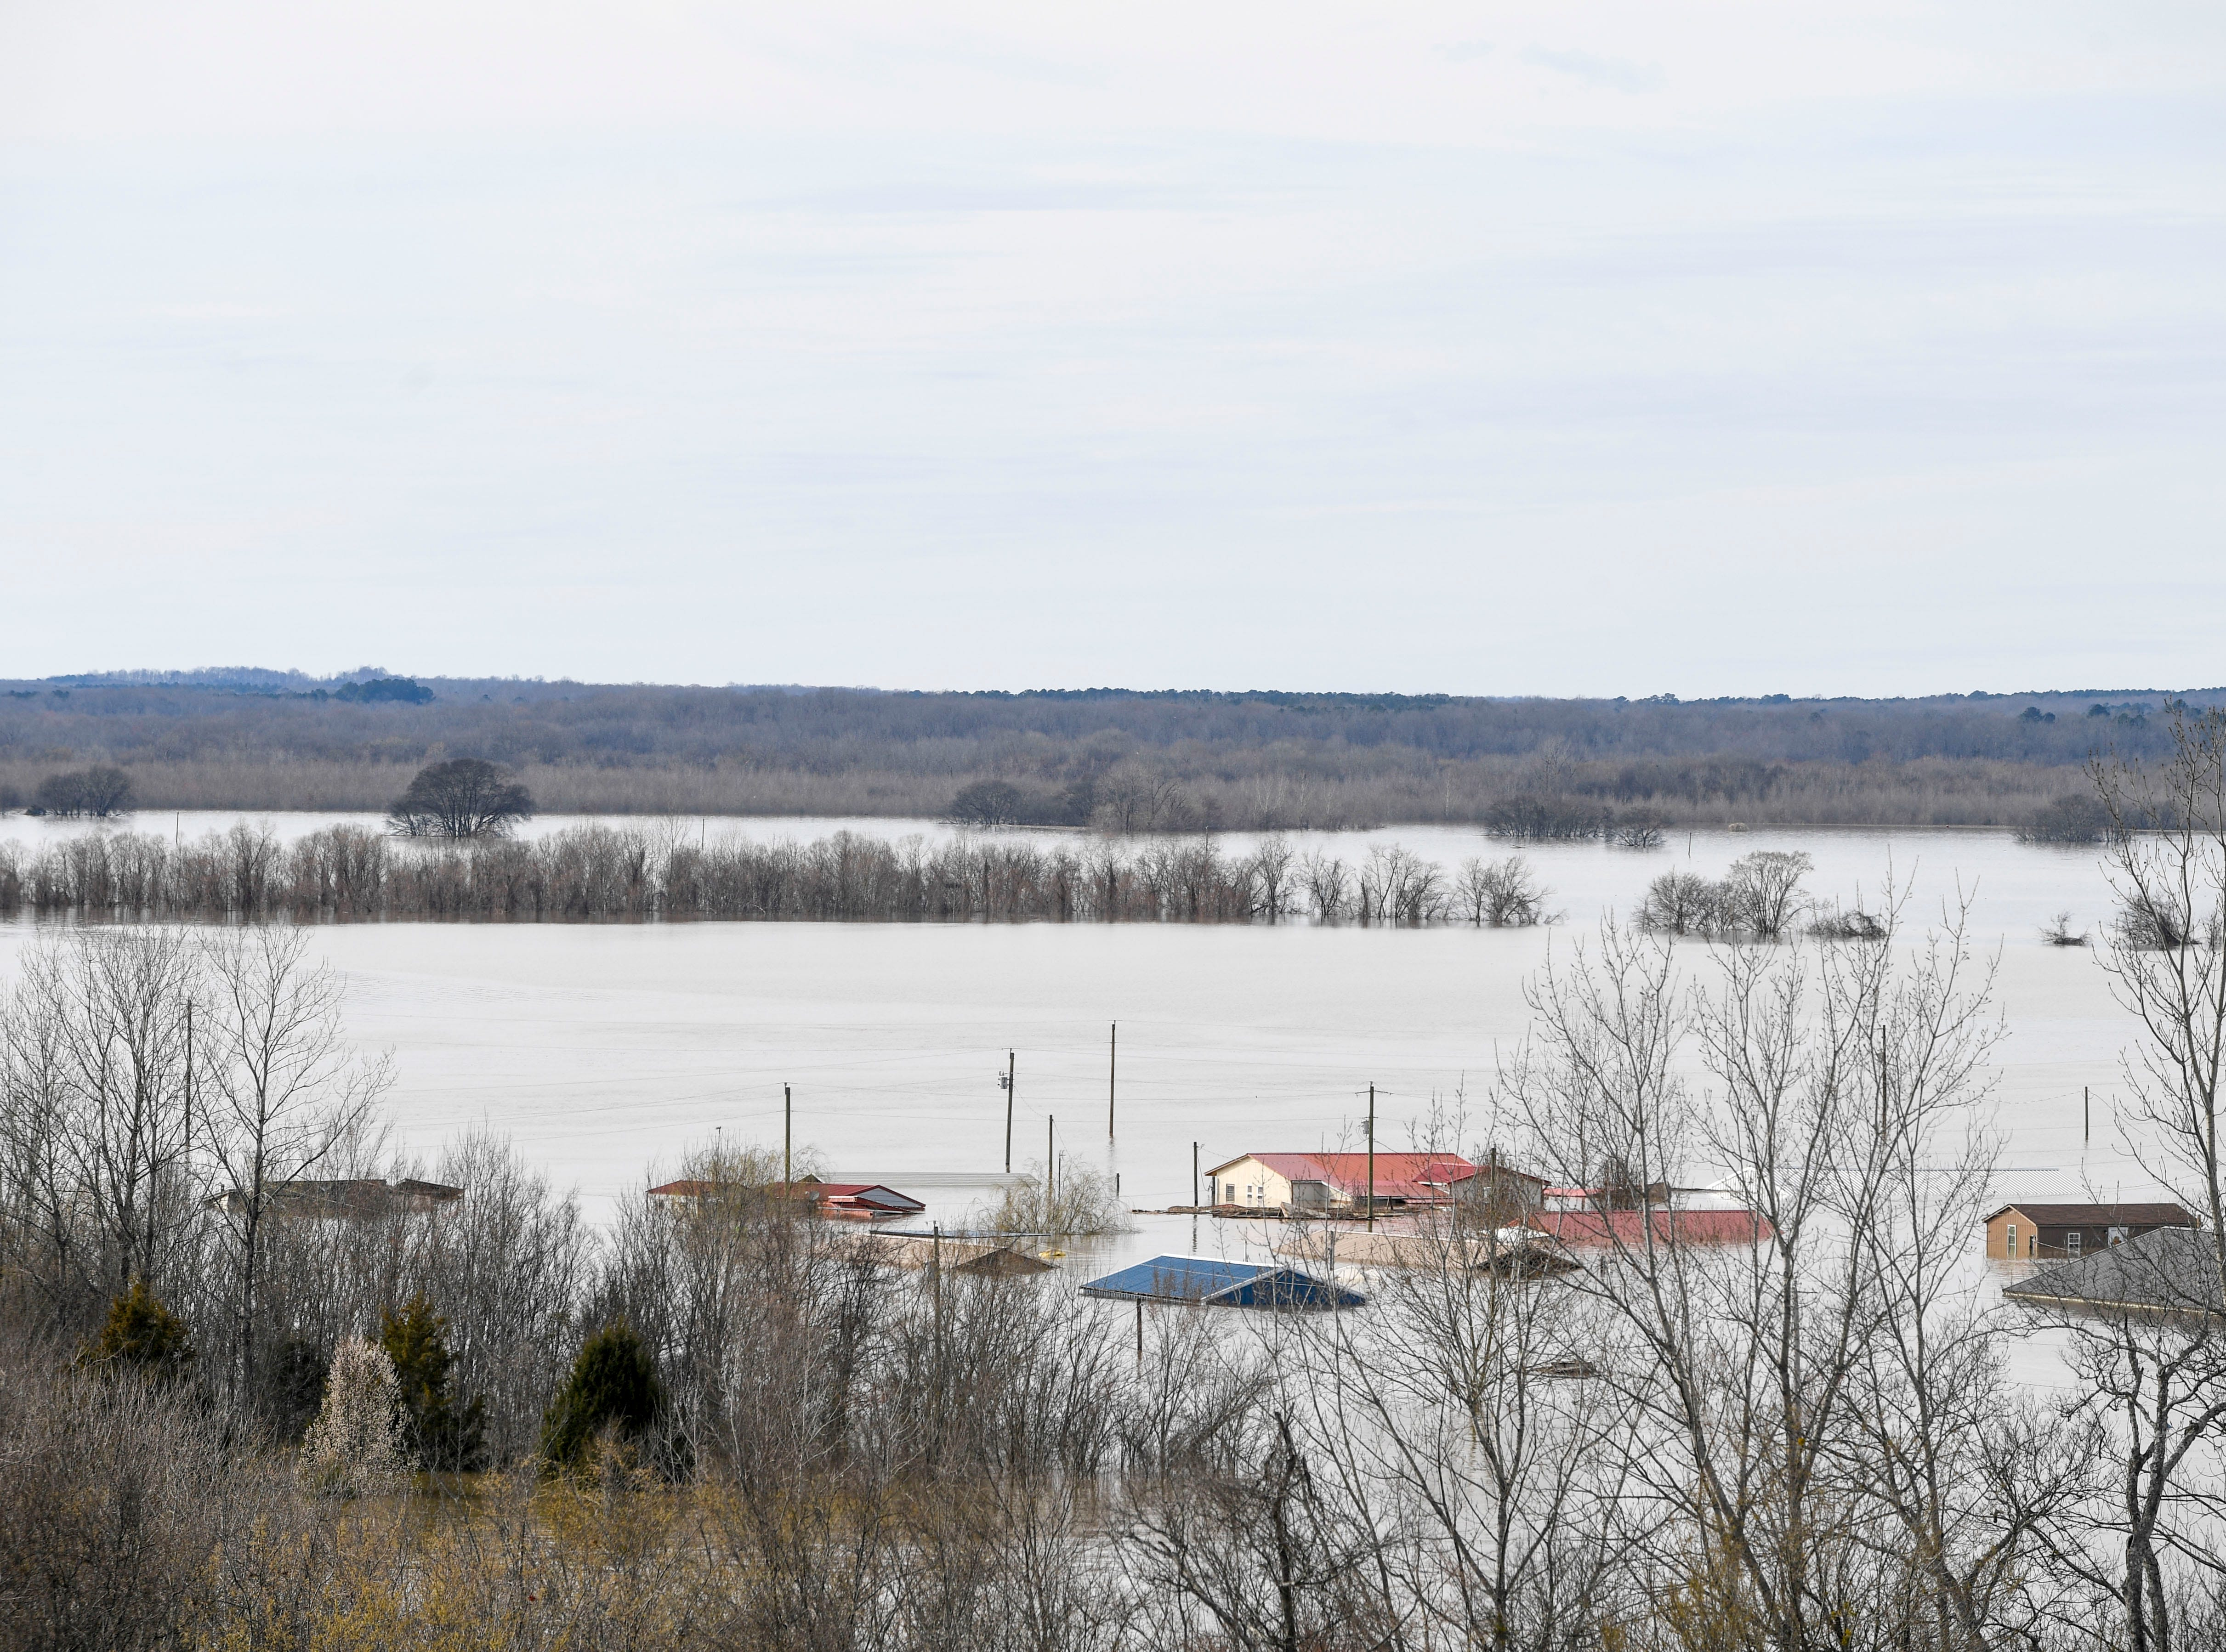 Waters from the Tennessee River flood homes up to their roofs in a neighborhood just off of the road at Tennessee River Bridge, in Savannah, Tenn., on Monday, Feb. 25, 2019.